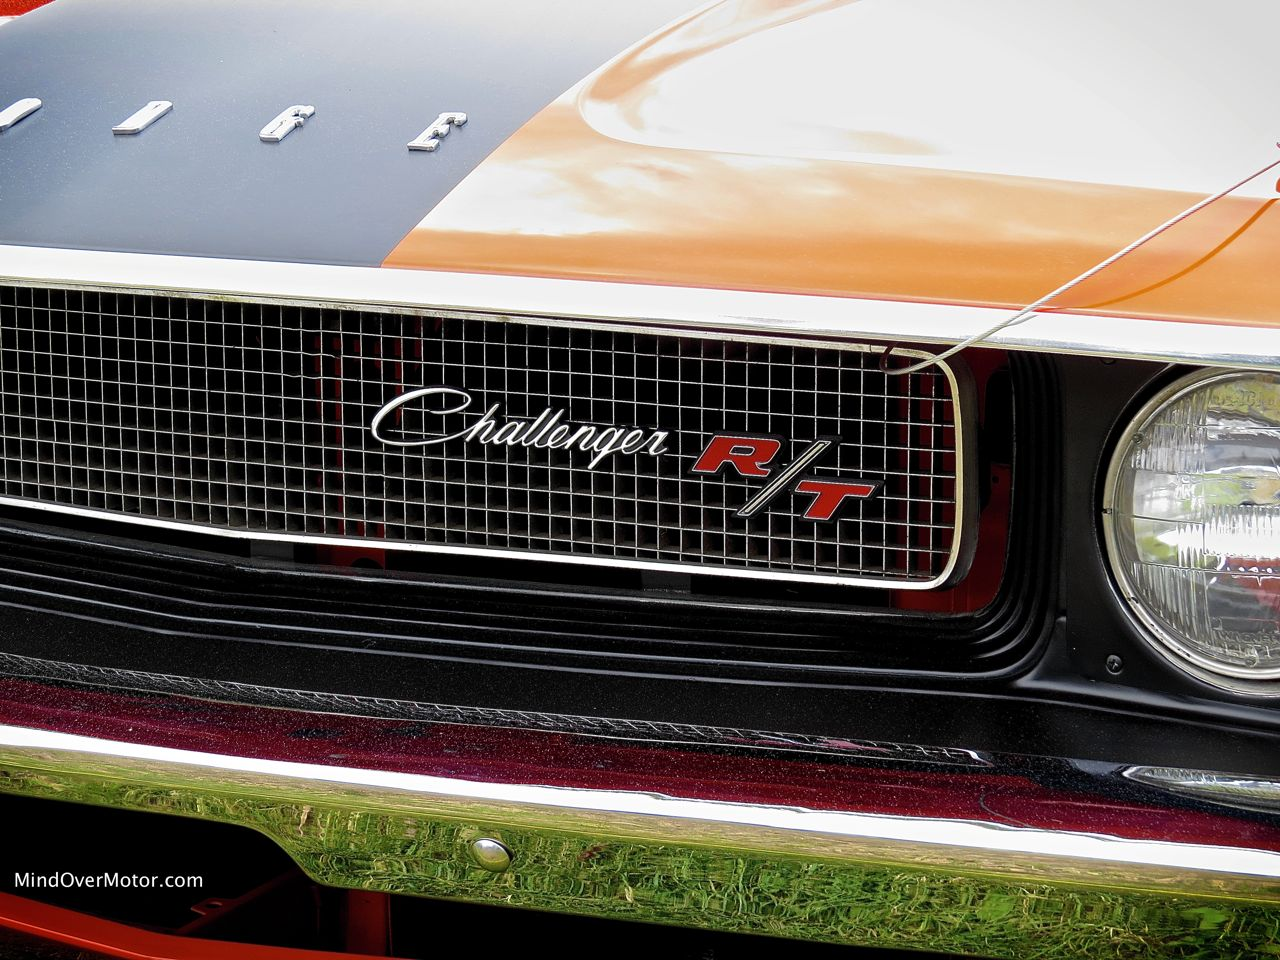 1970 Dodge Challenger R:T Convertible Grille Badge